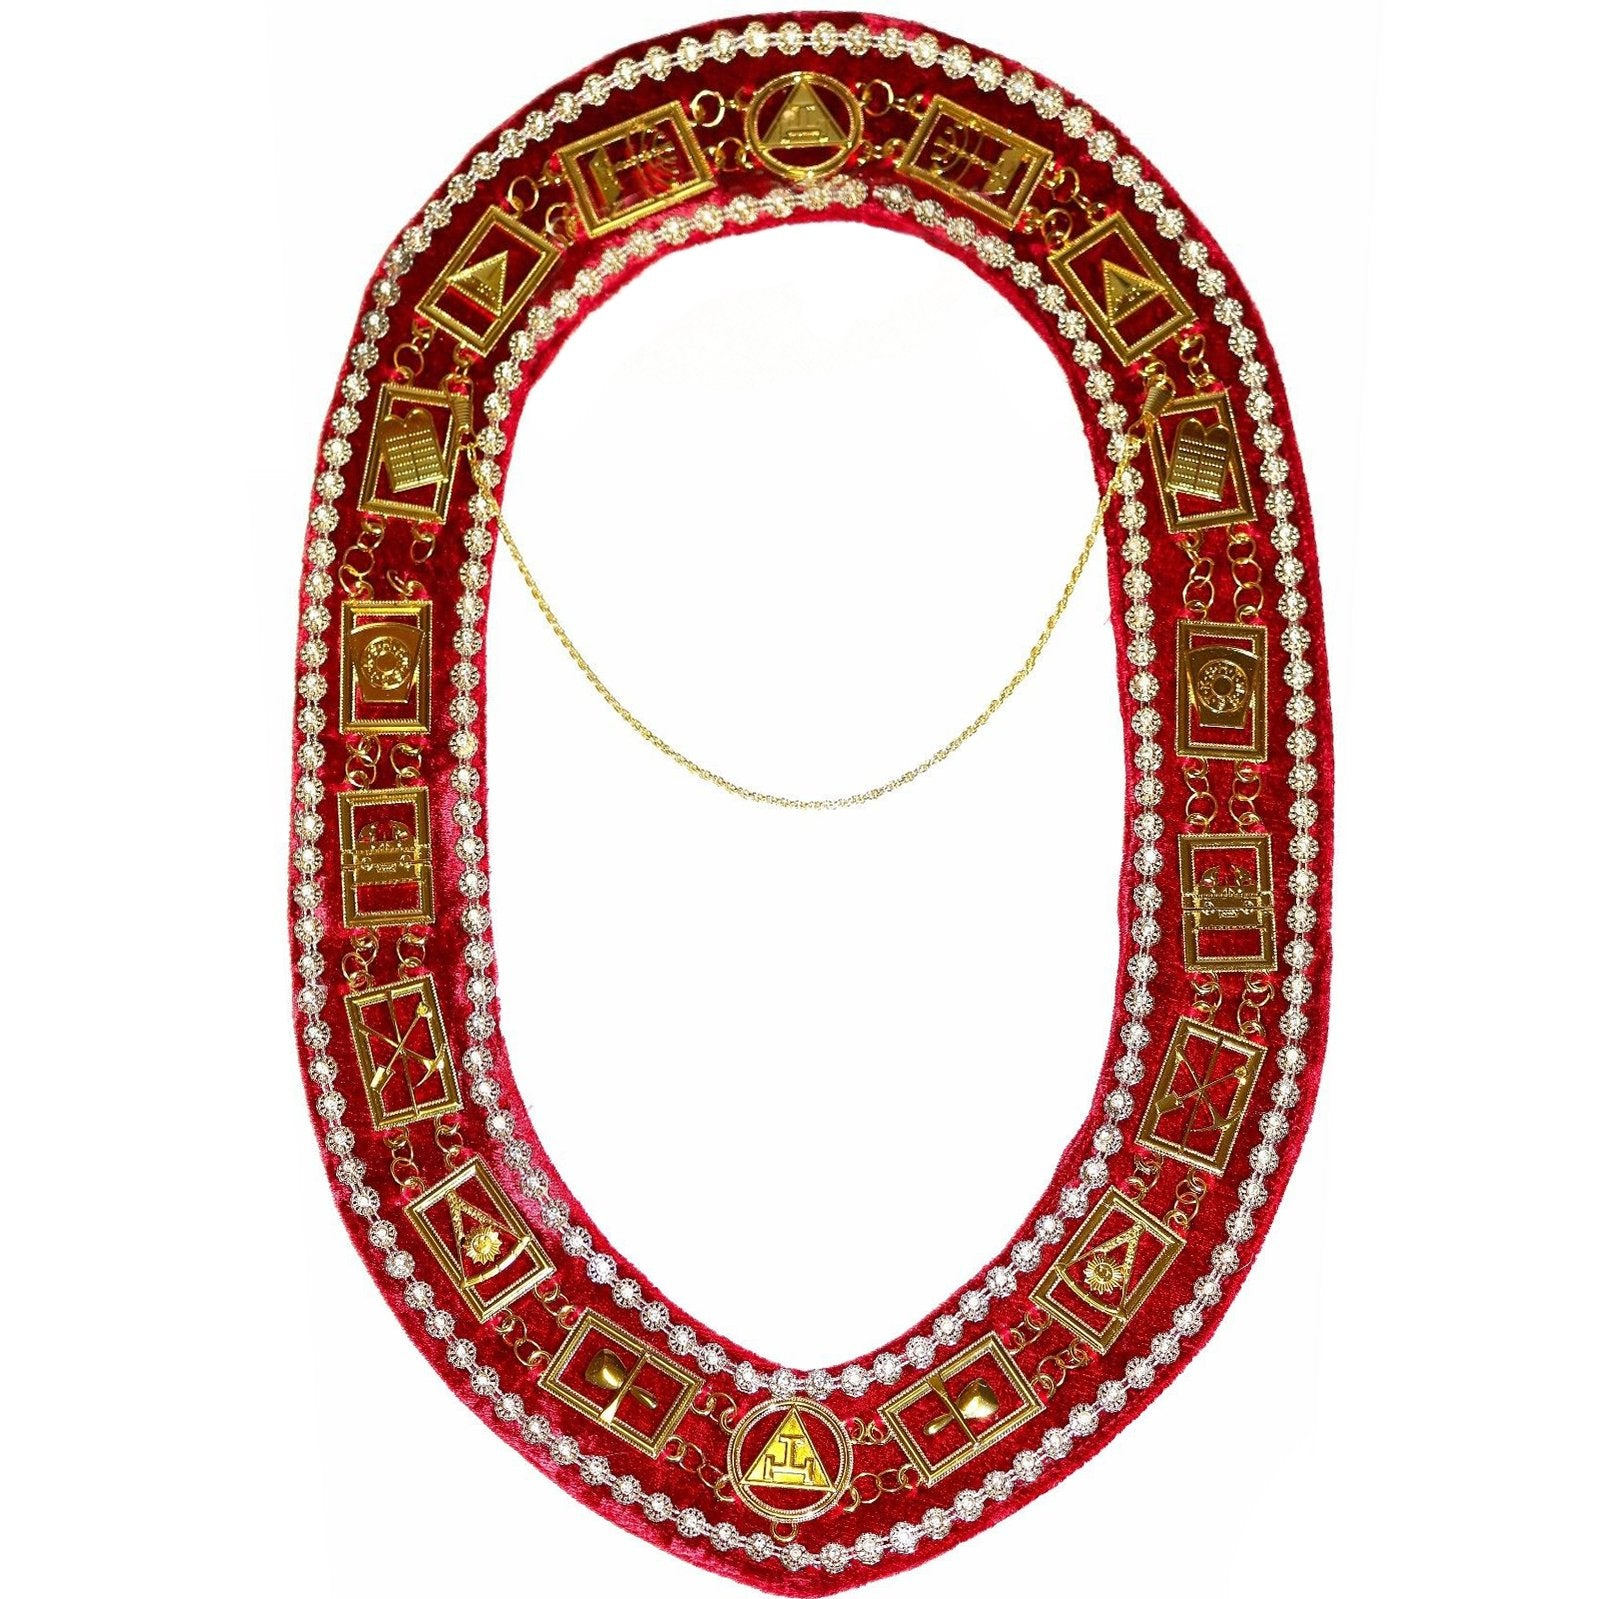 Royal Arch - Chain Collar with Rhinestones - Gold/Silver on Red Velvet + Free Case - Bricks Masons